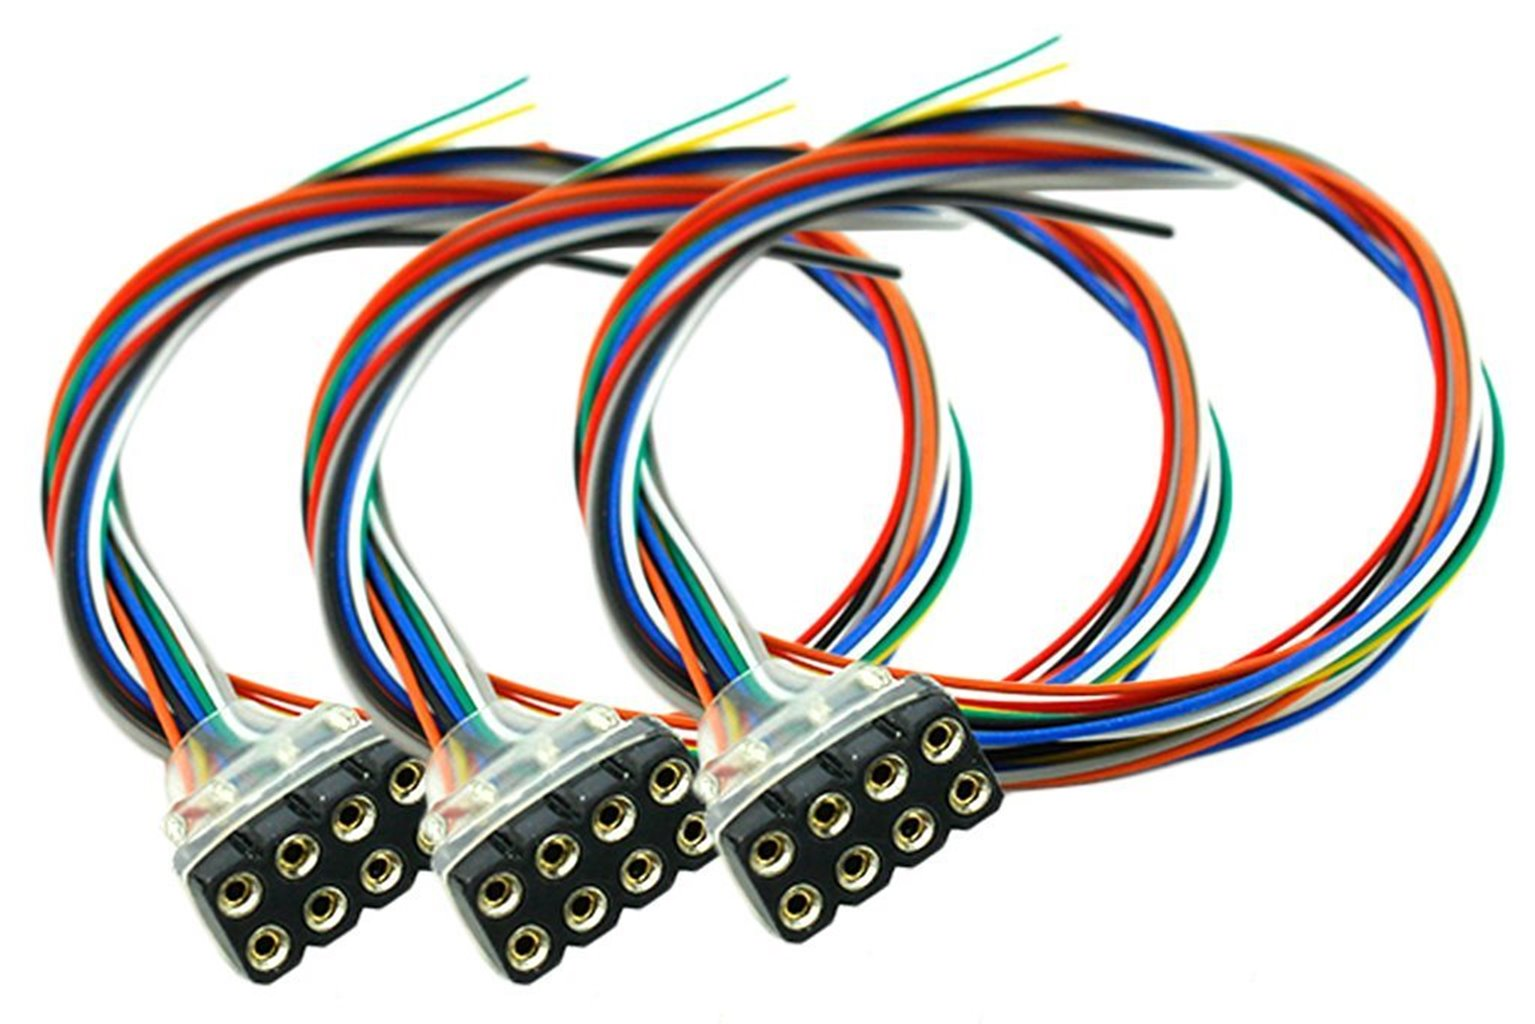 Decoder Harness 8 Pin Female (200mm) (3 Pack)